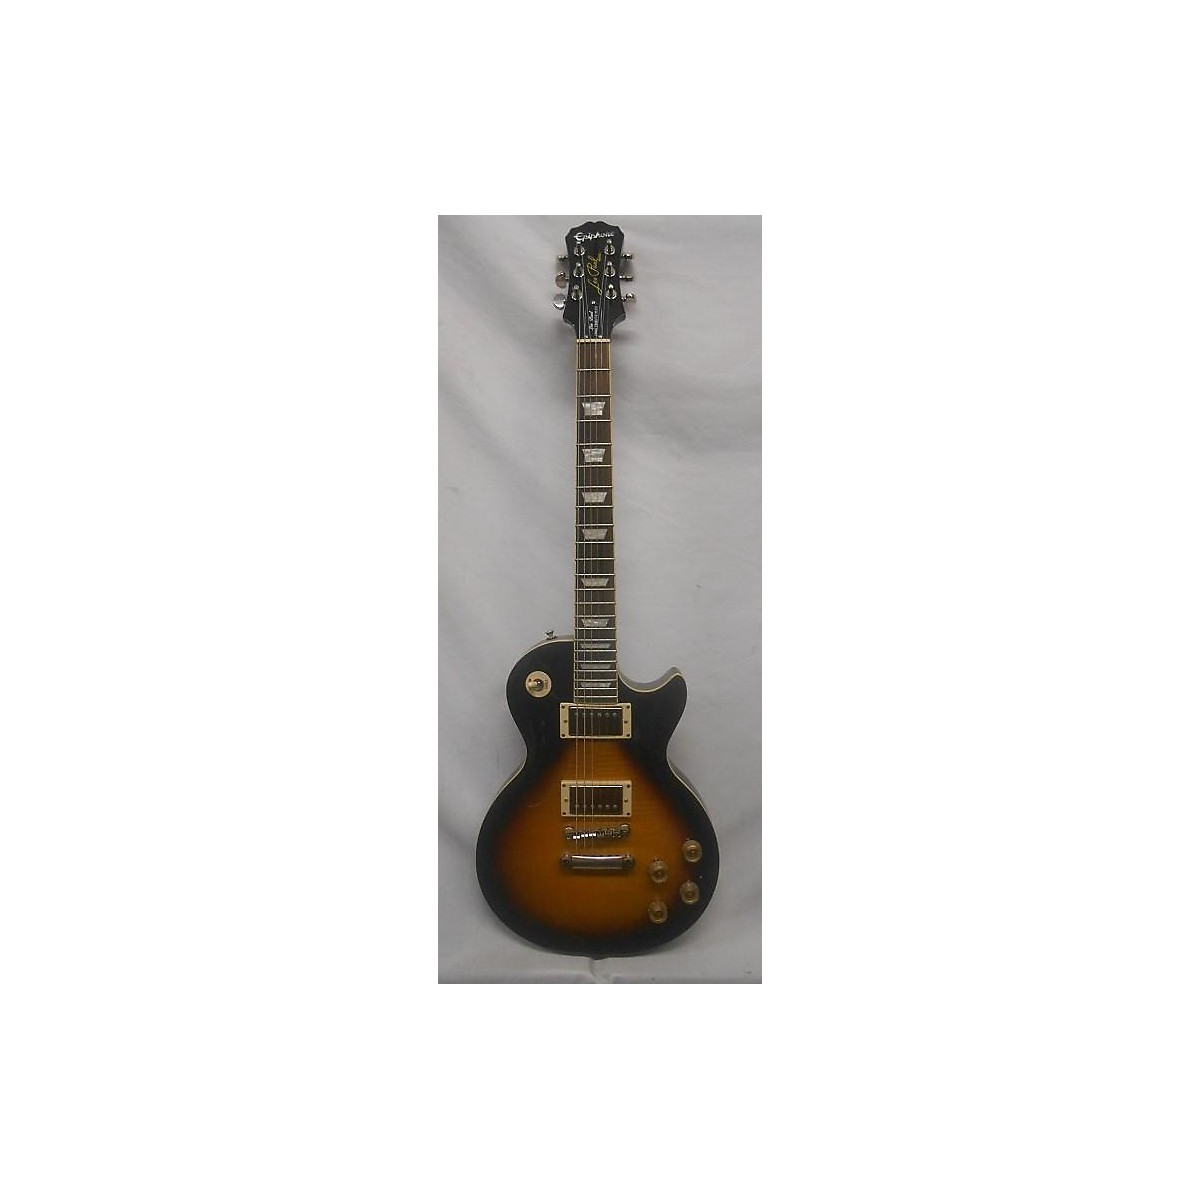 Epiphone Les Paul Tribute 1960S Neck Solid Body Electric Guitar